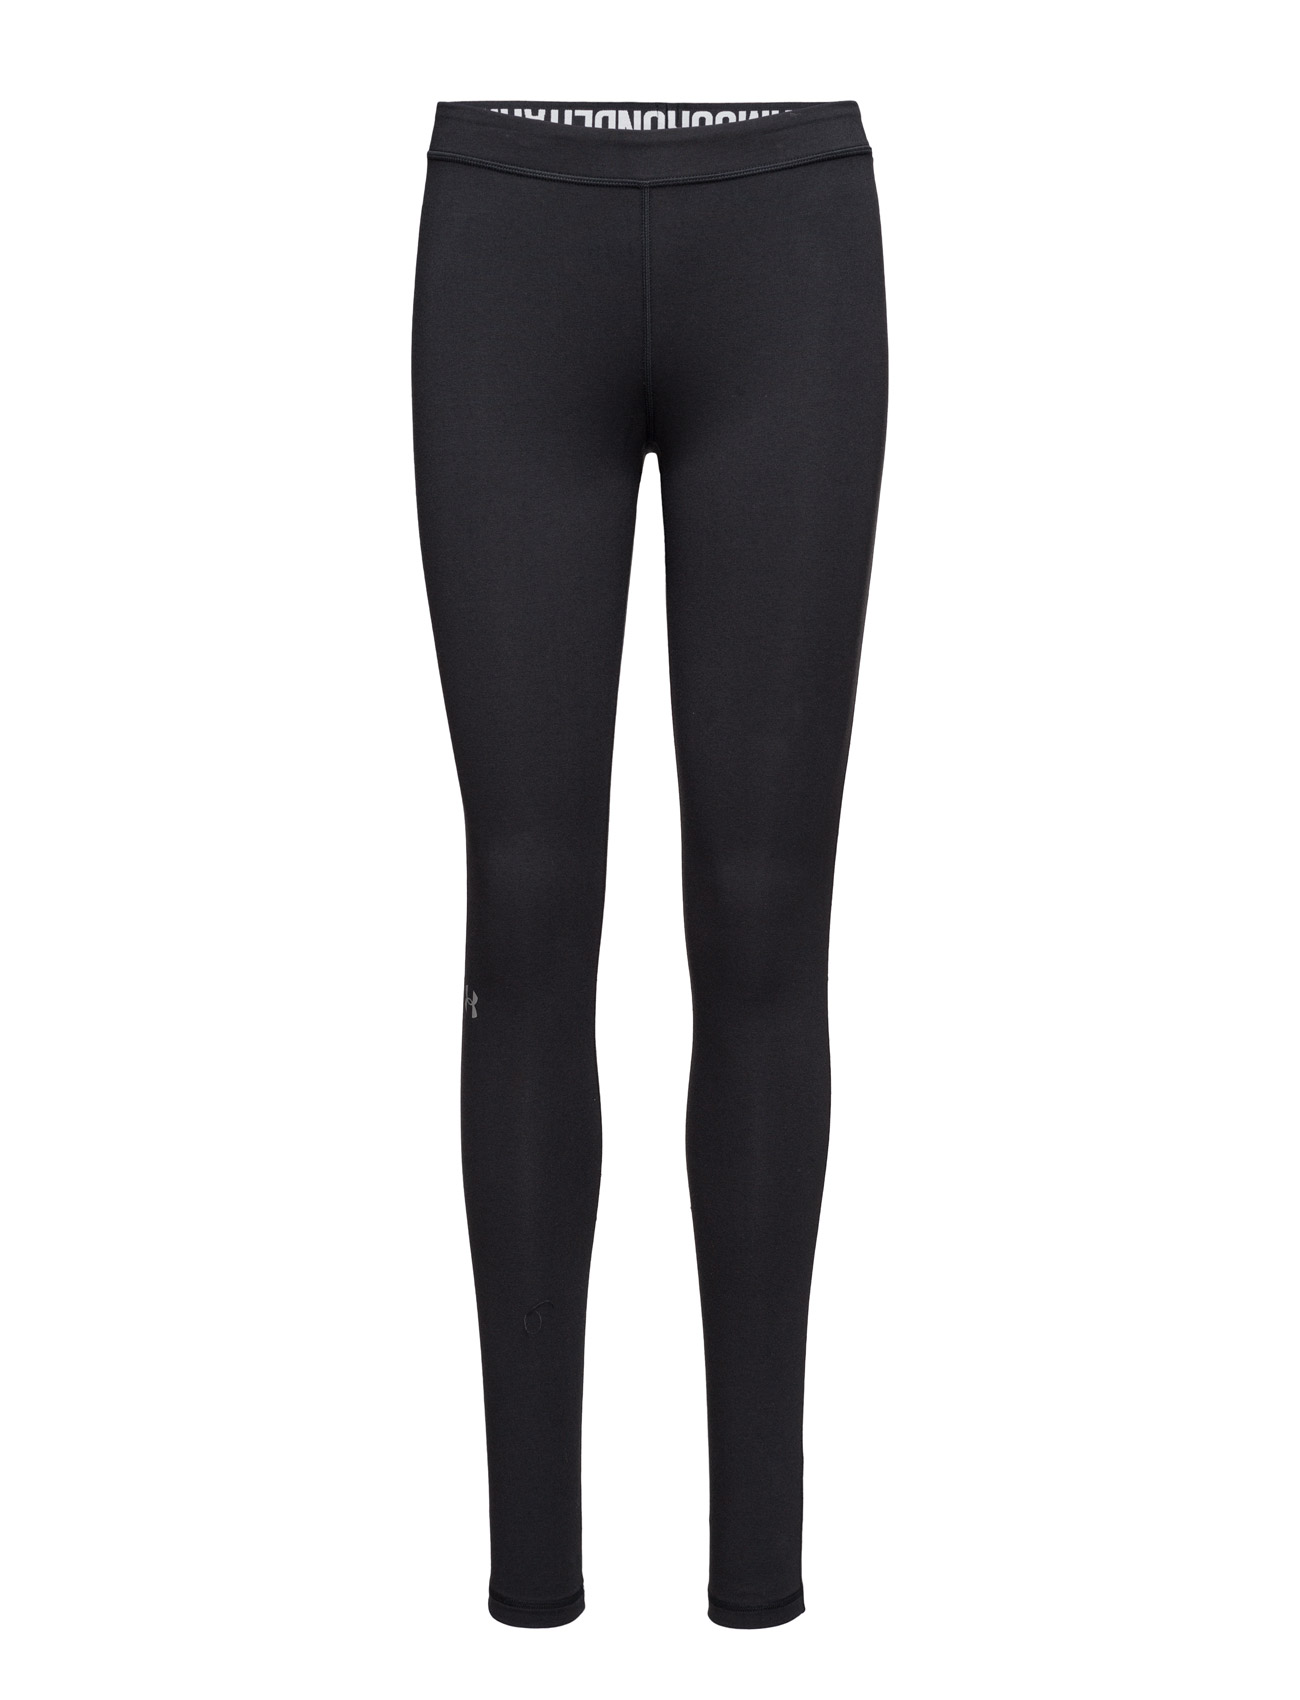 Favorite Legging Under Armour Trænings leggings til Damer i Sort